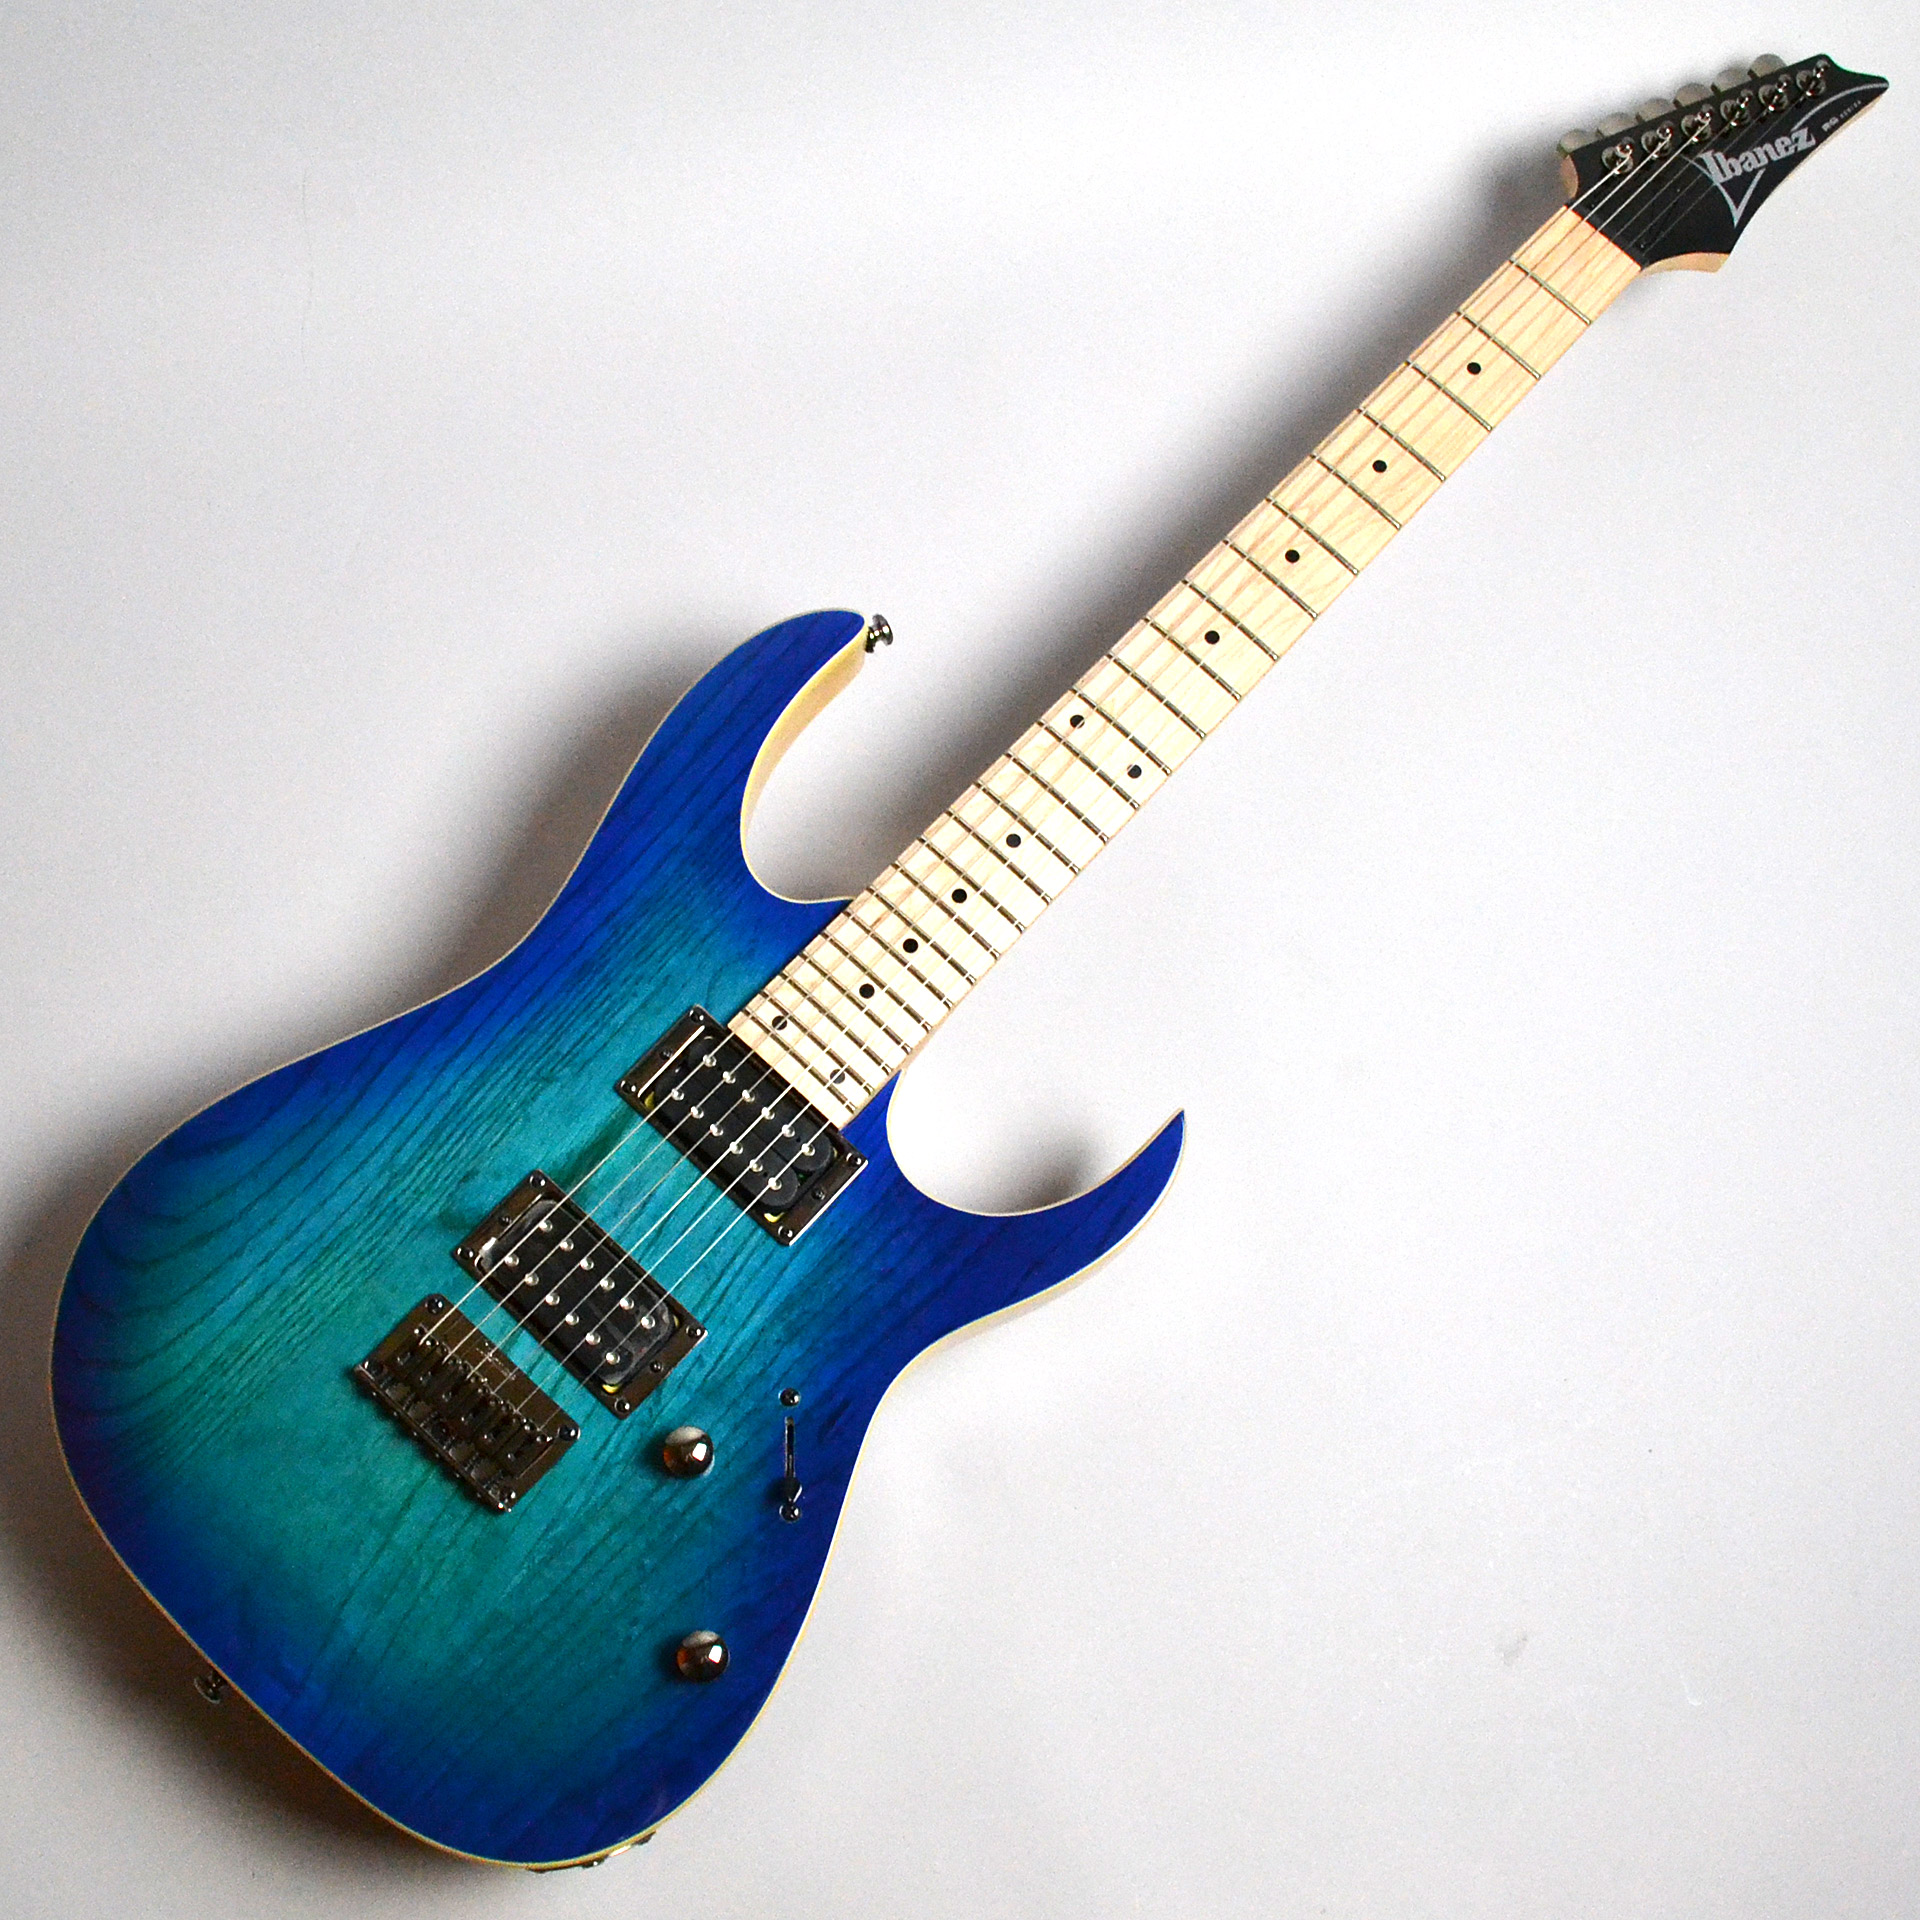 RG412AHM / Blue Moon Burst 【B級特価】